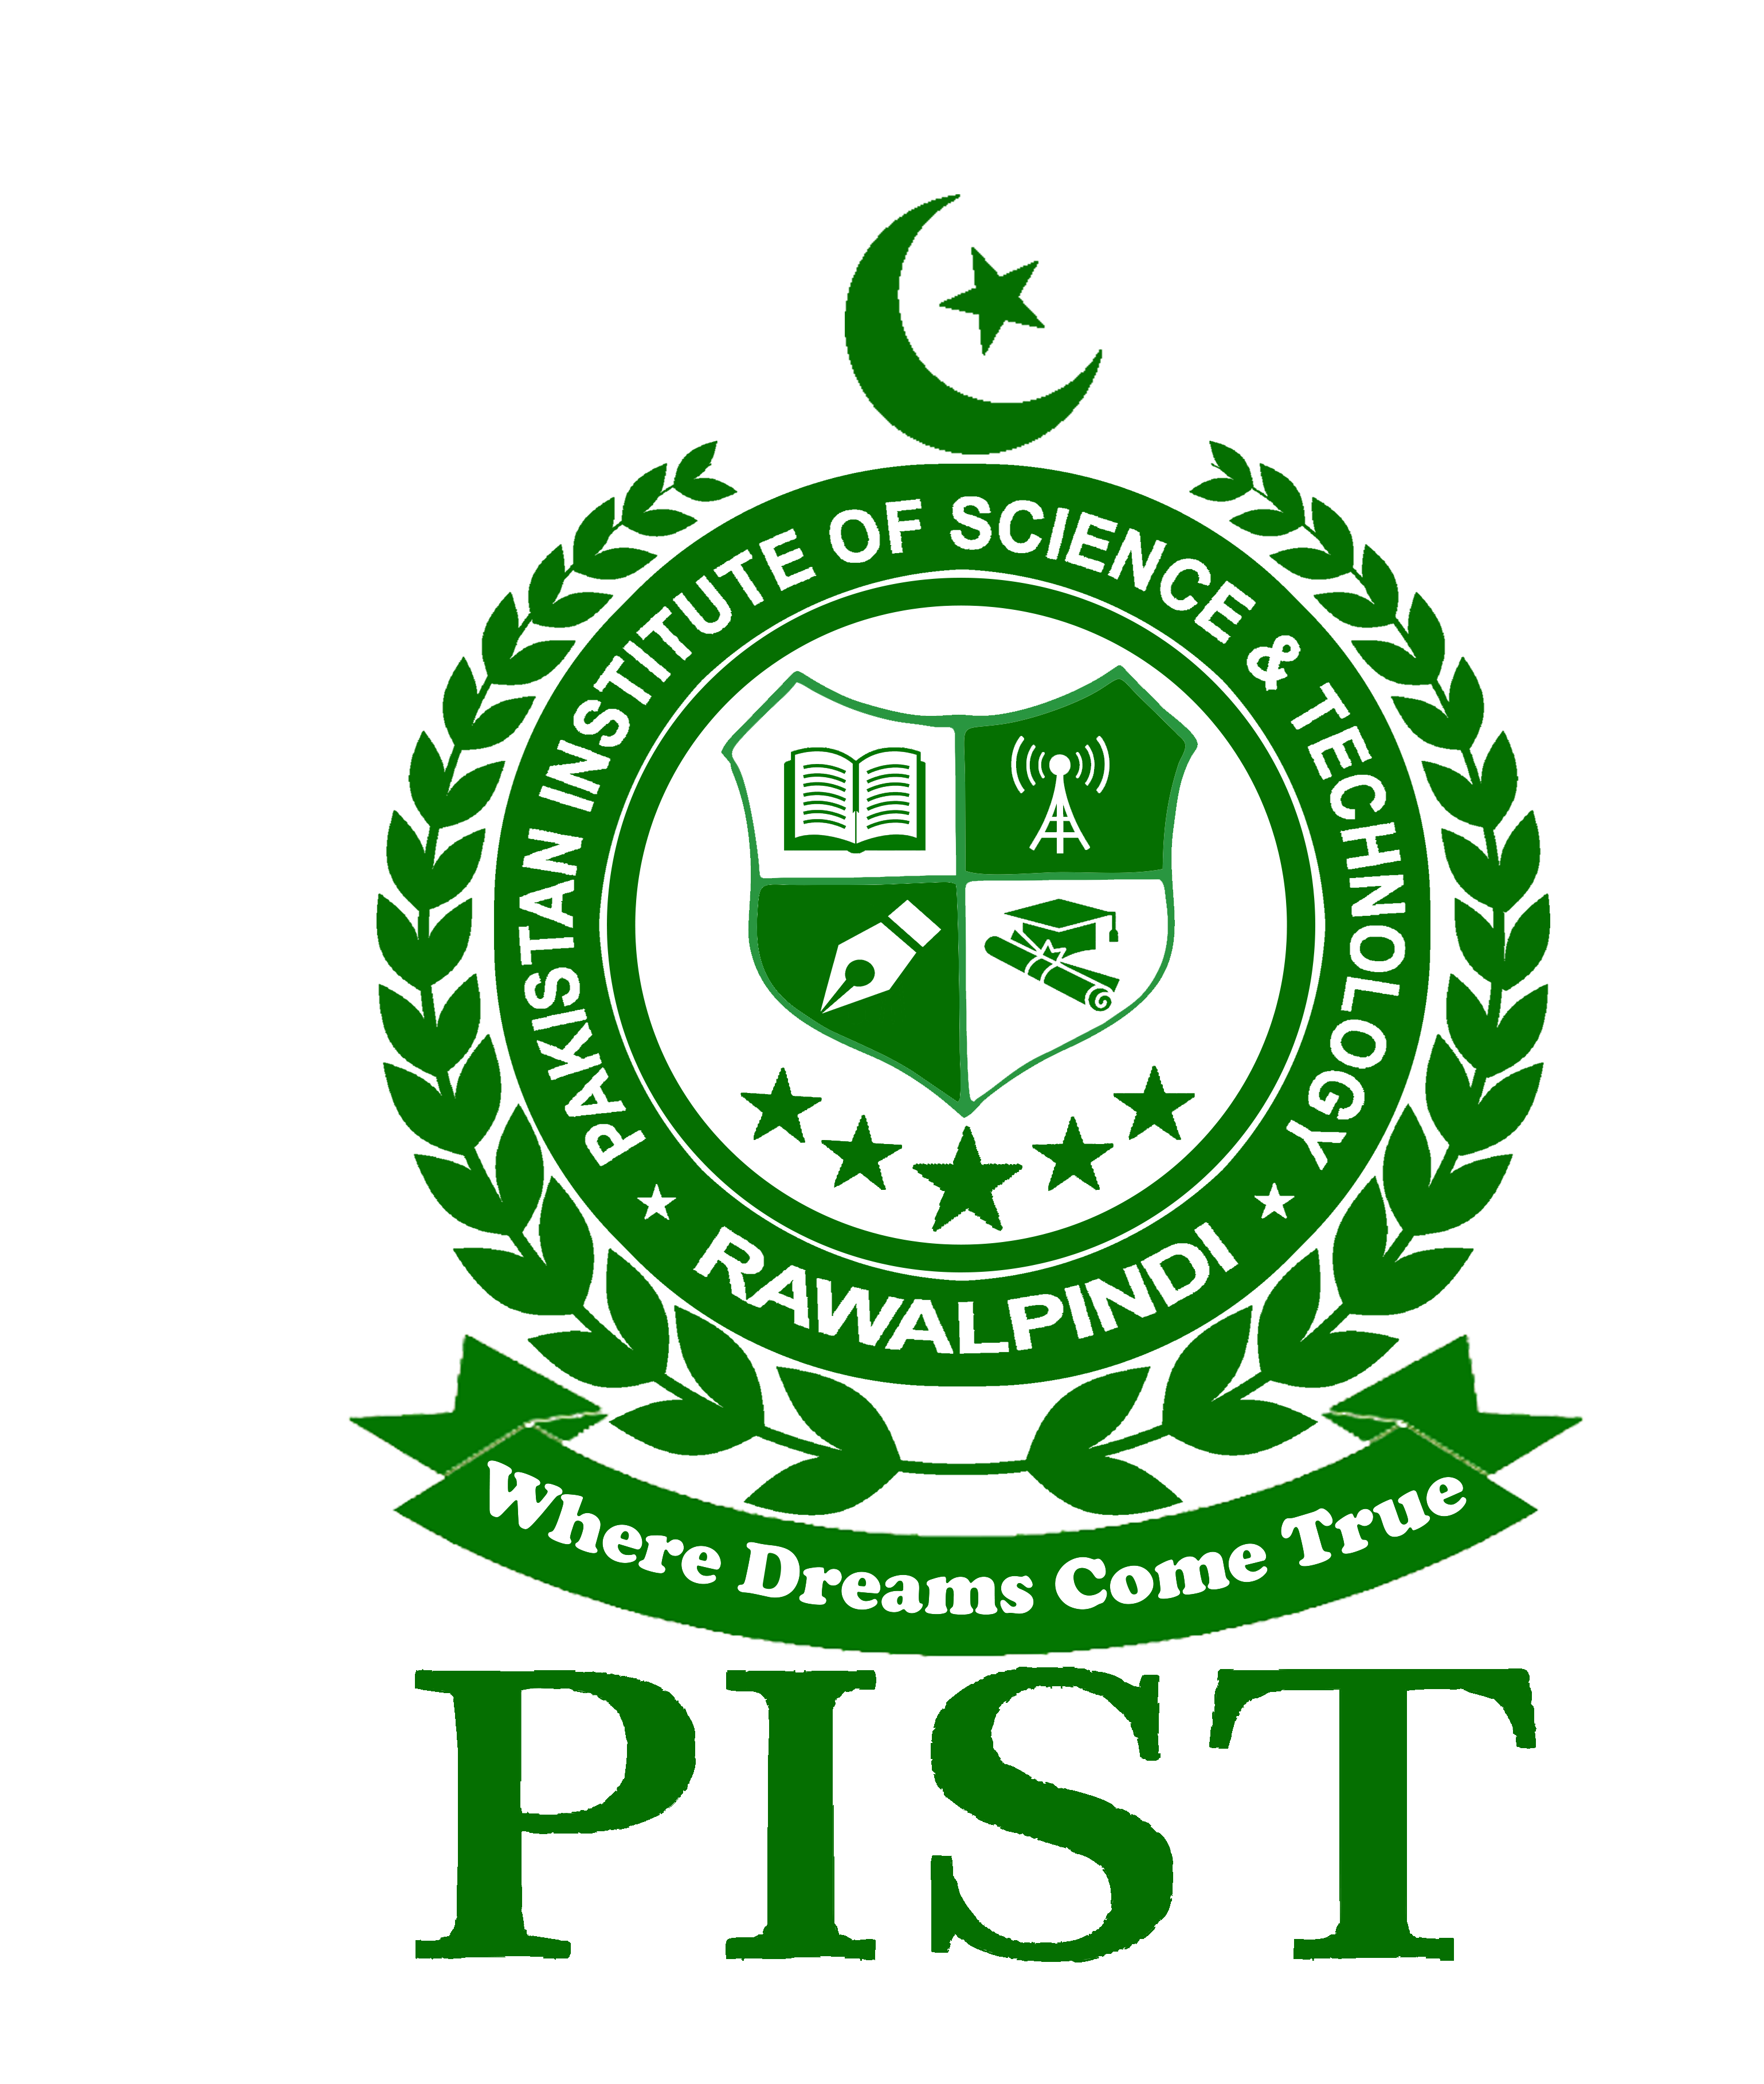 Pakistan Institute of Science and Technology PIST